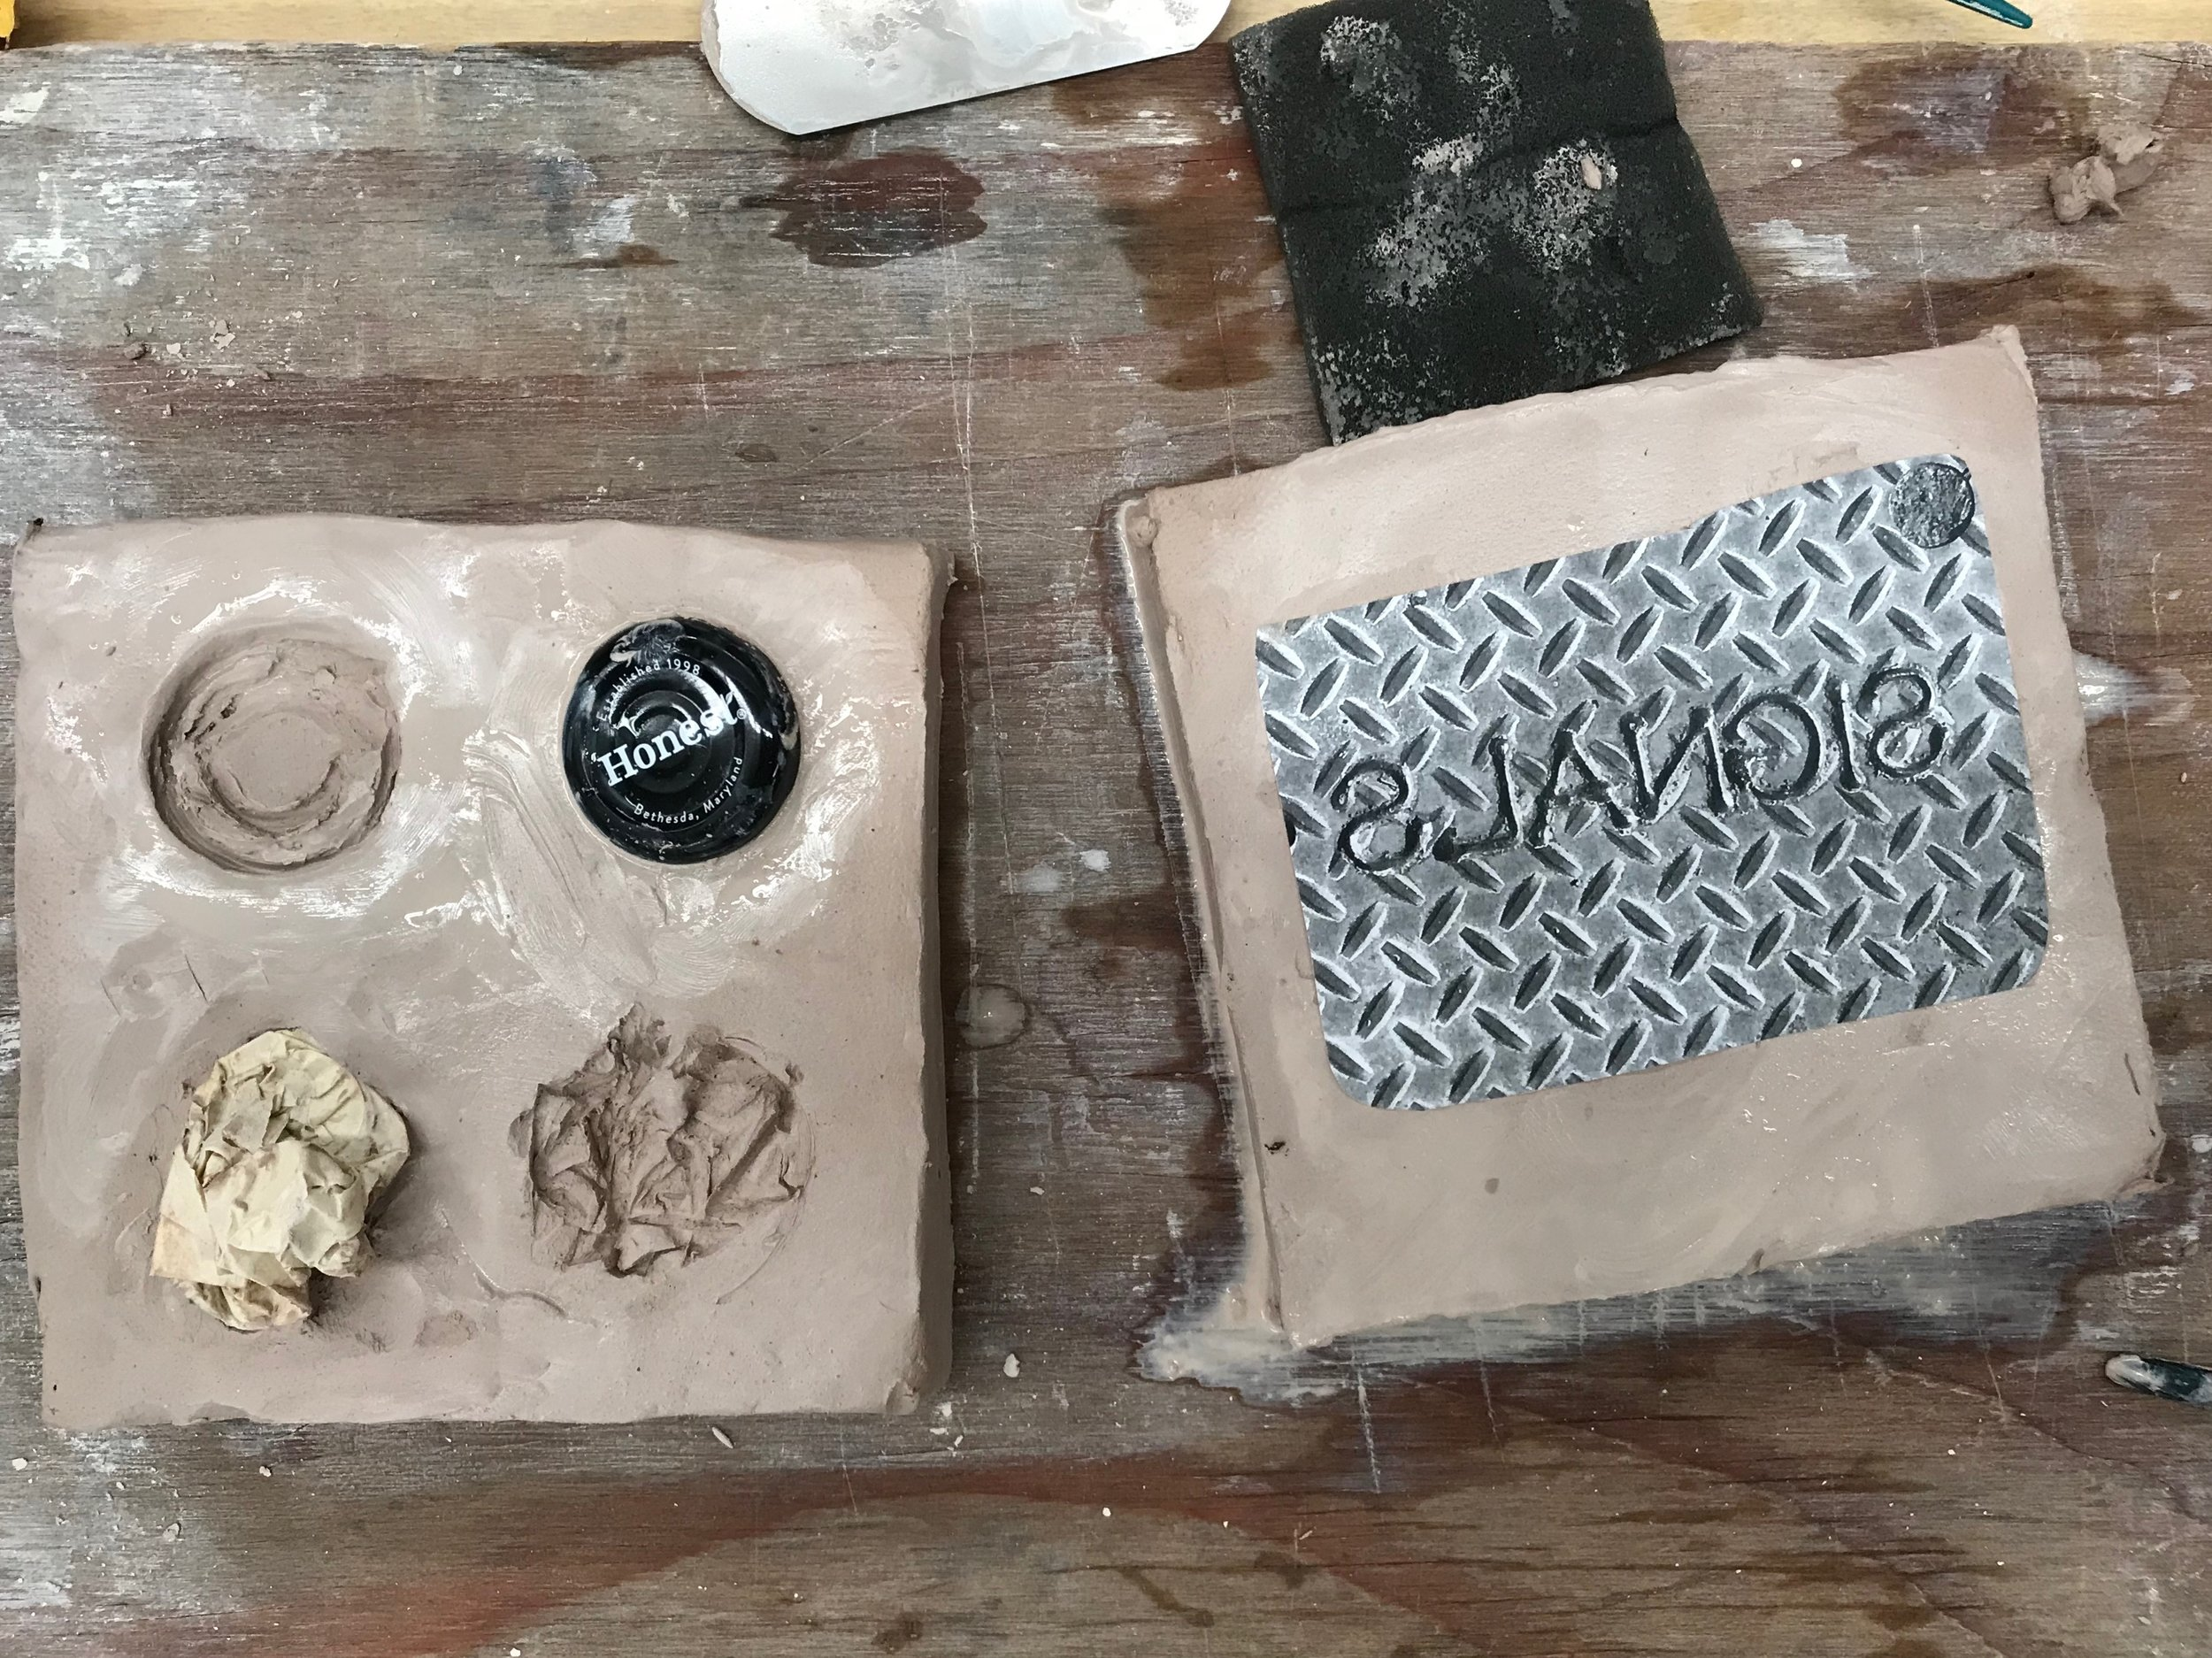 Mold-making tiles with items pressed into clay, as with a stamp.